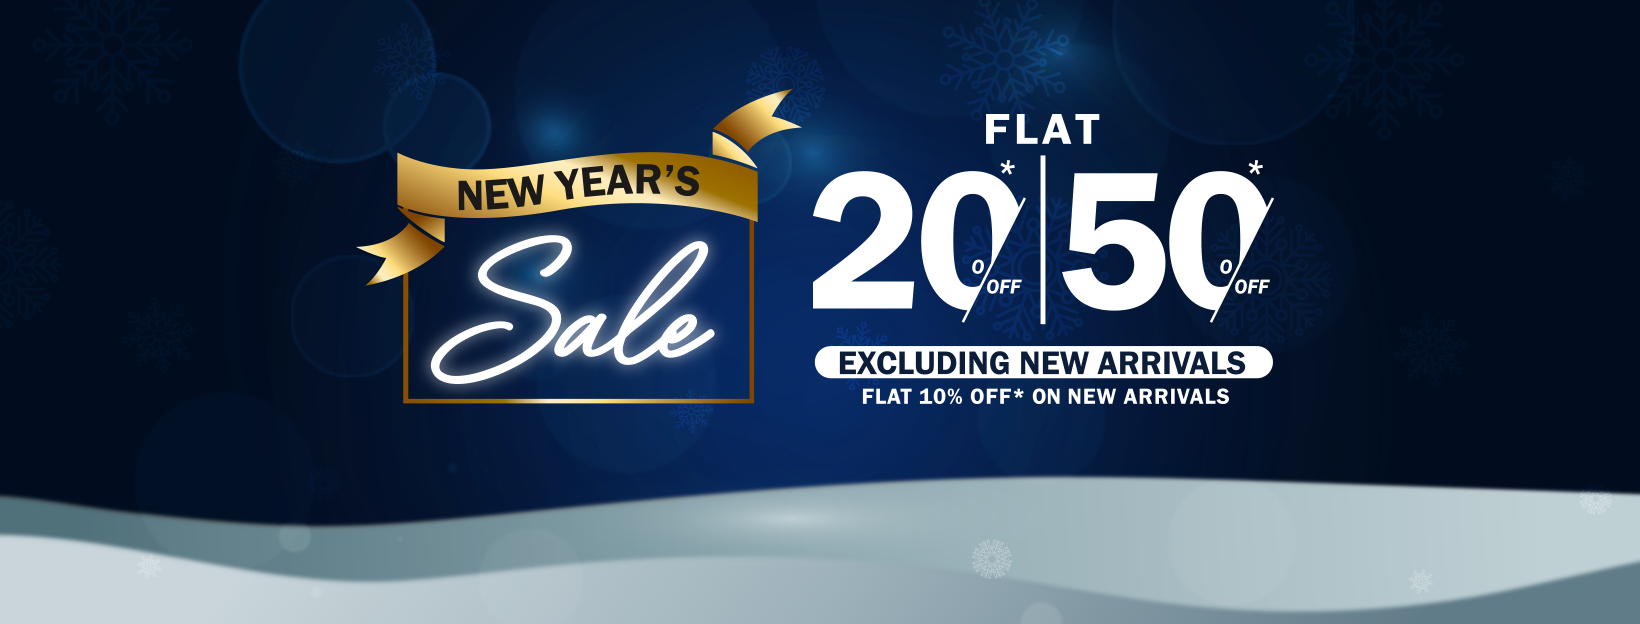 Uniworth - NEW YEAR SALE